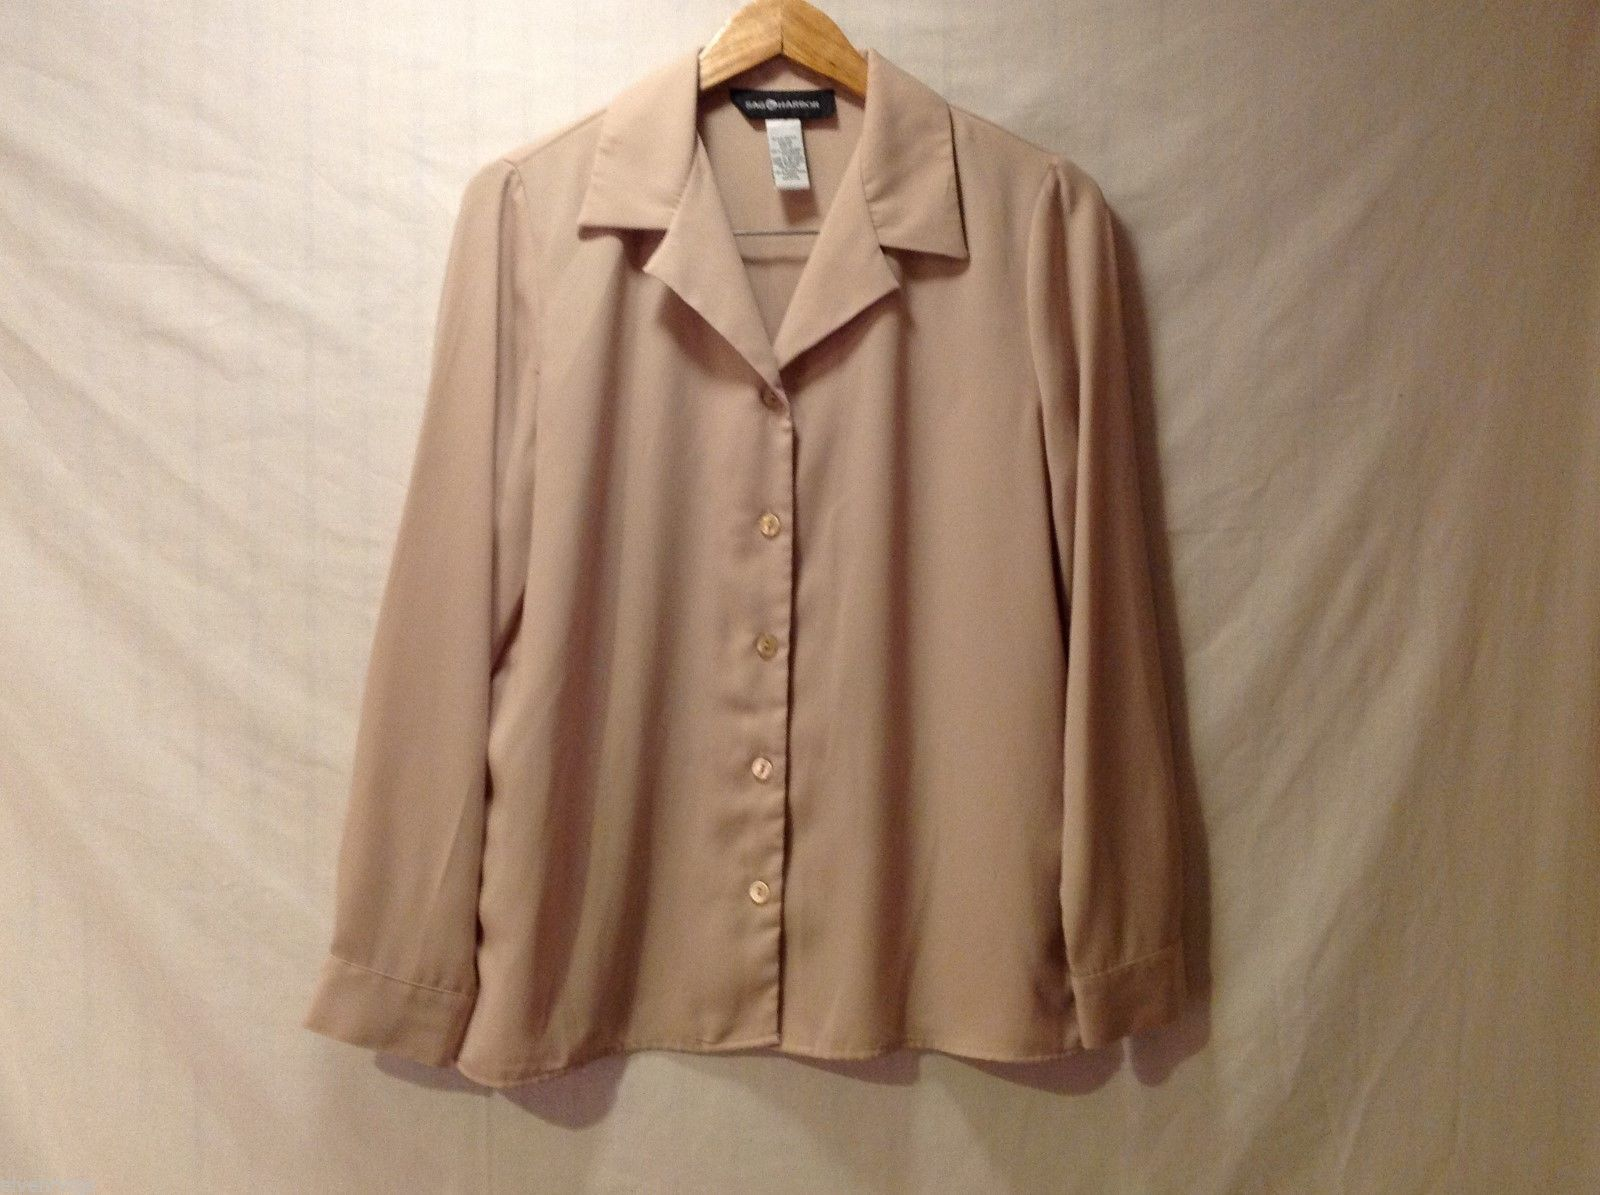 Sag Harbor womens Champagne Colored Long Sleeve Silk Blouse, Size 12